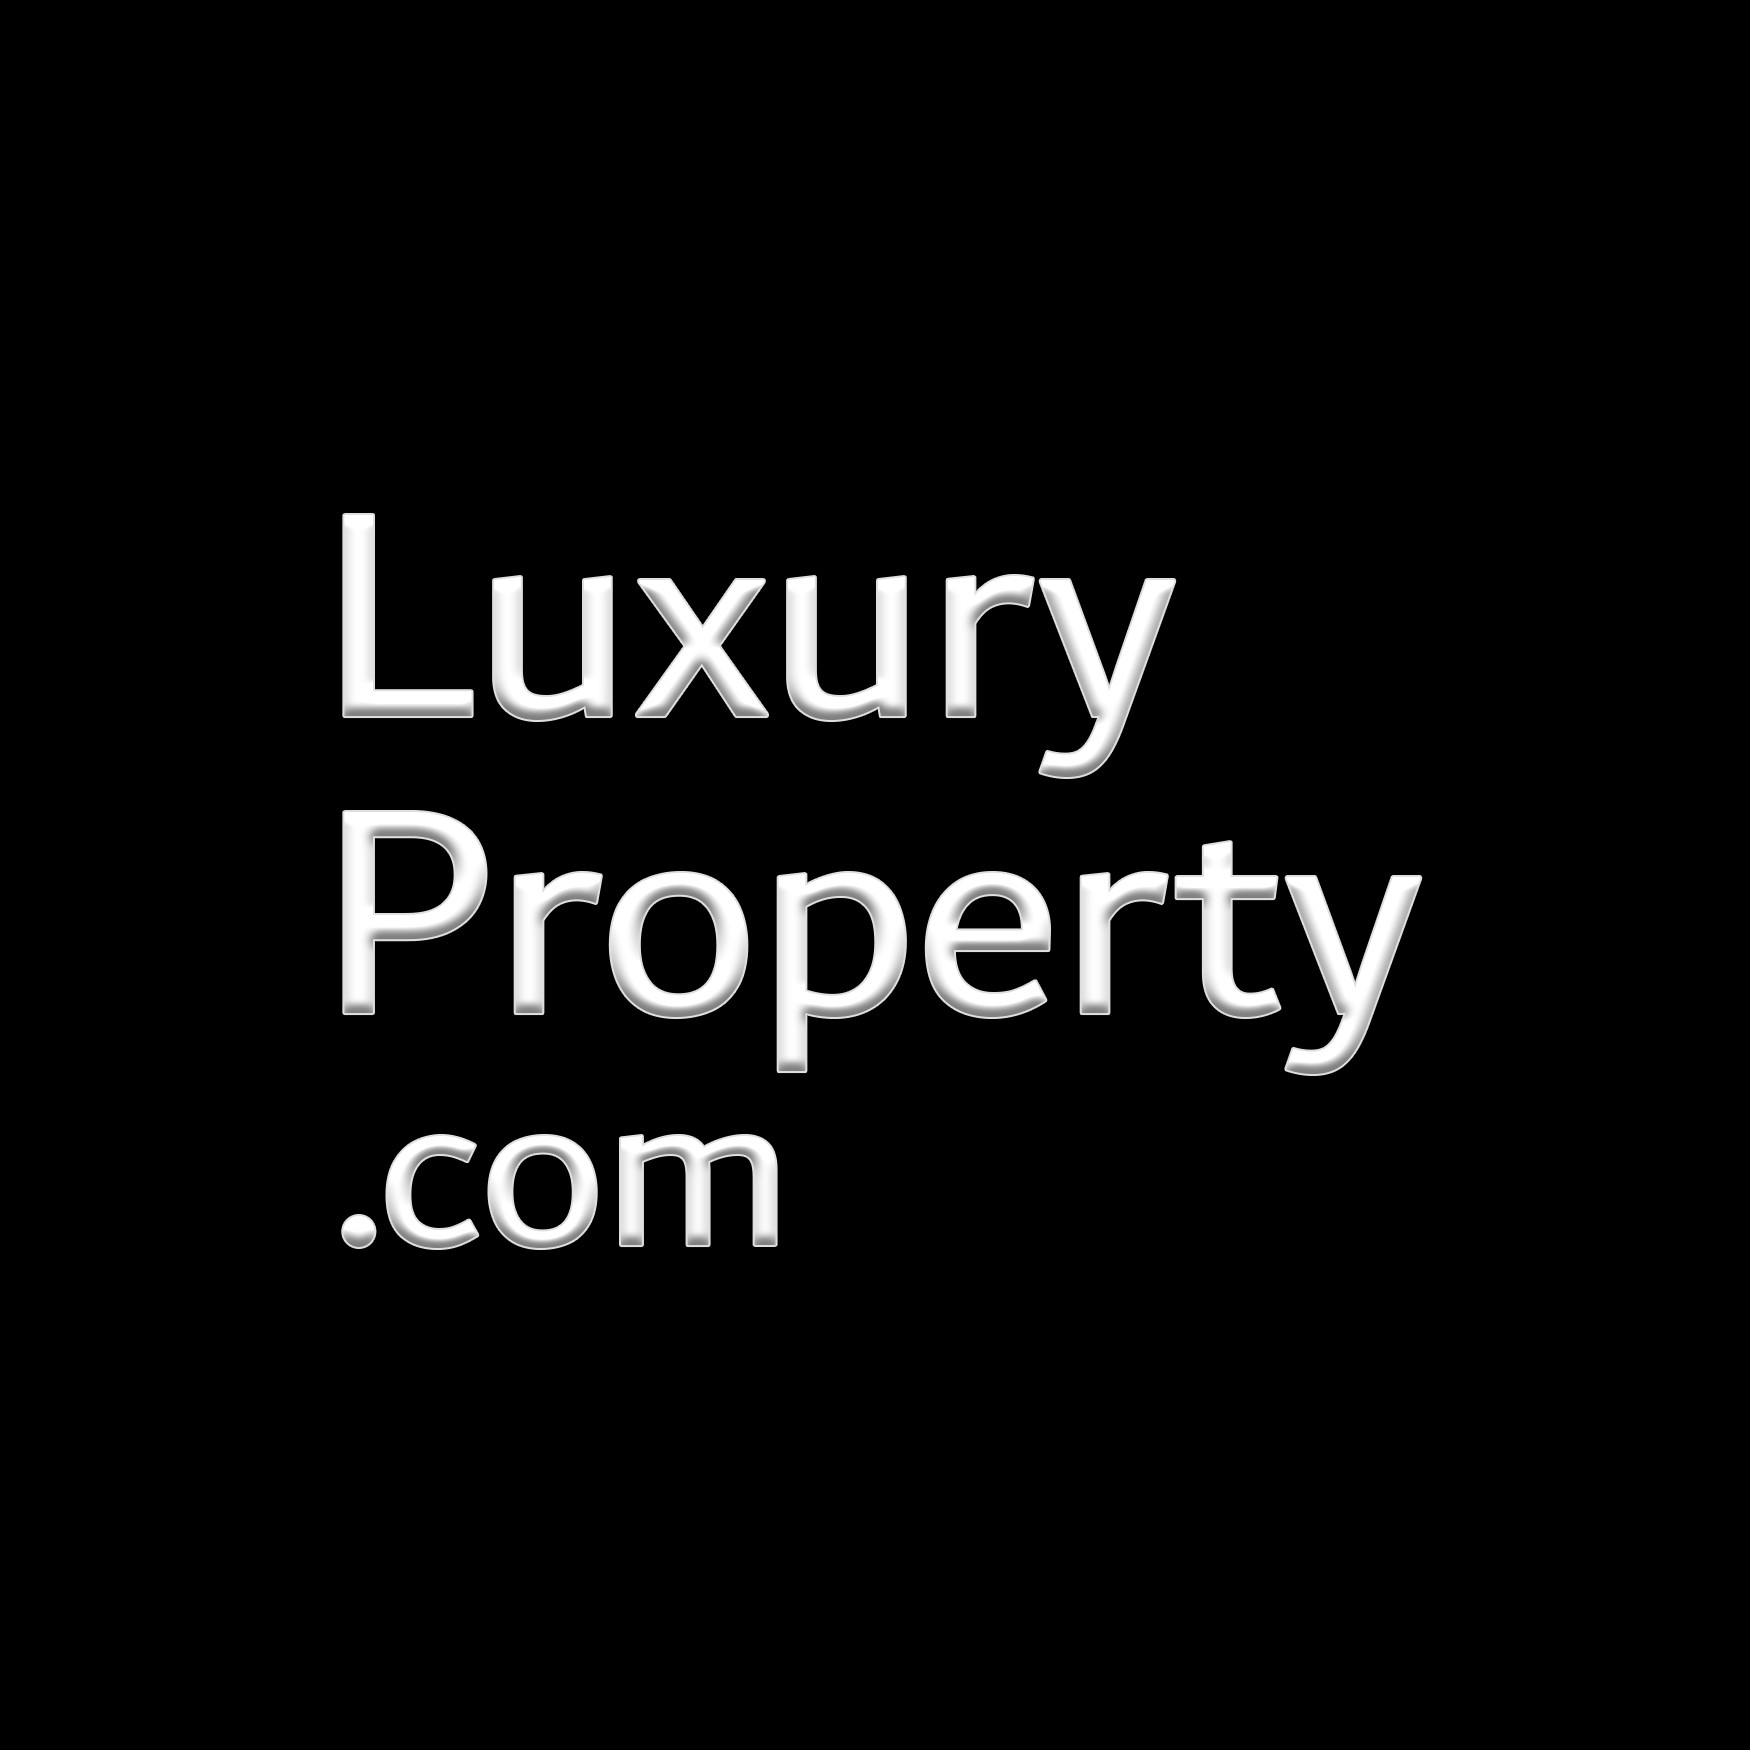 LuxuryProperty.com Notes Dubai Real Estate Market is on Highest Level of Last 11 Years